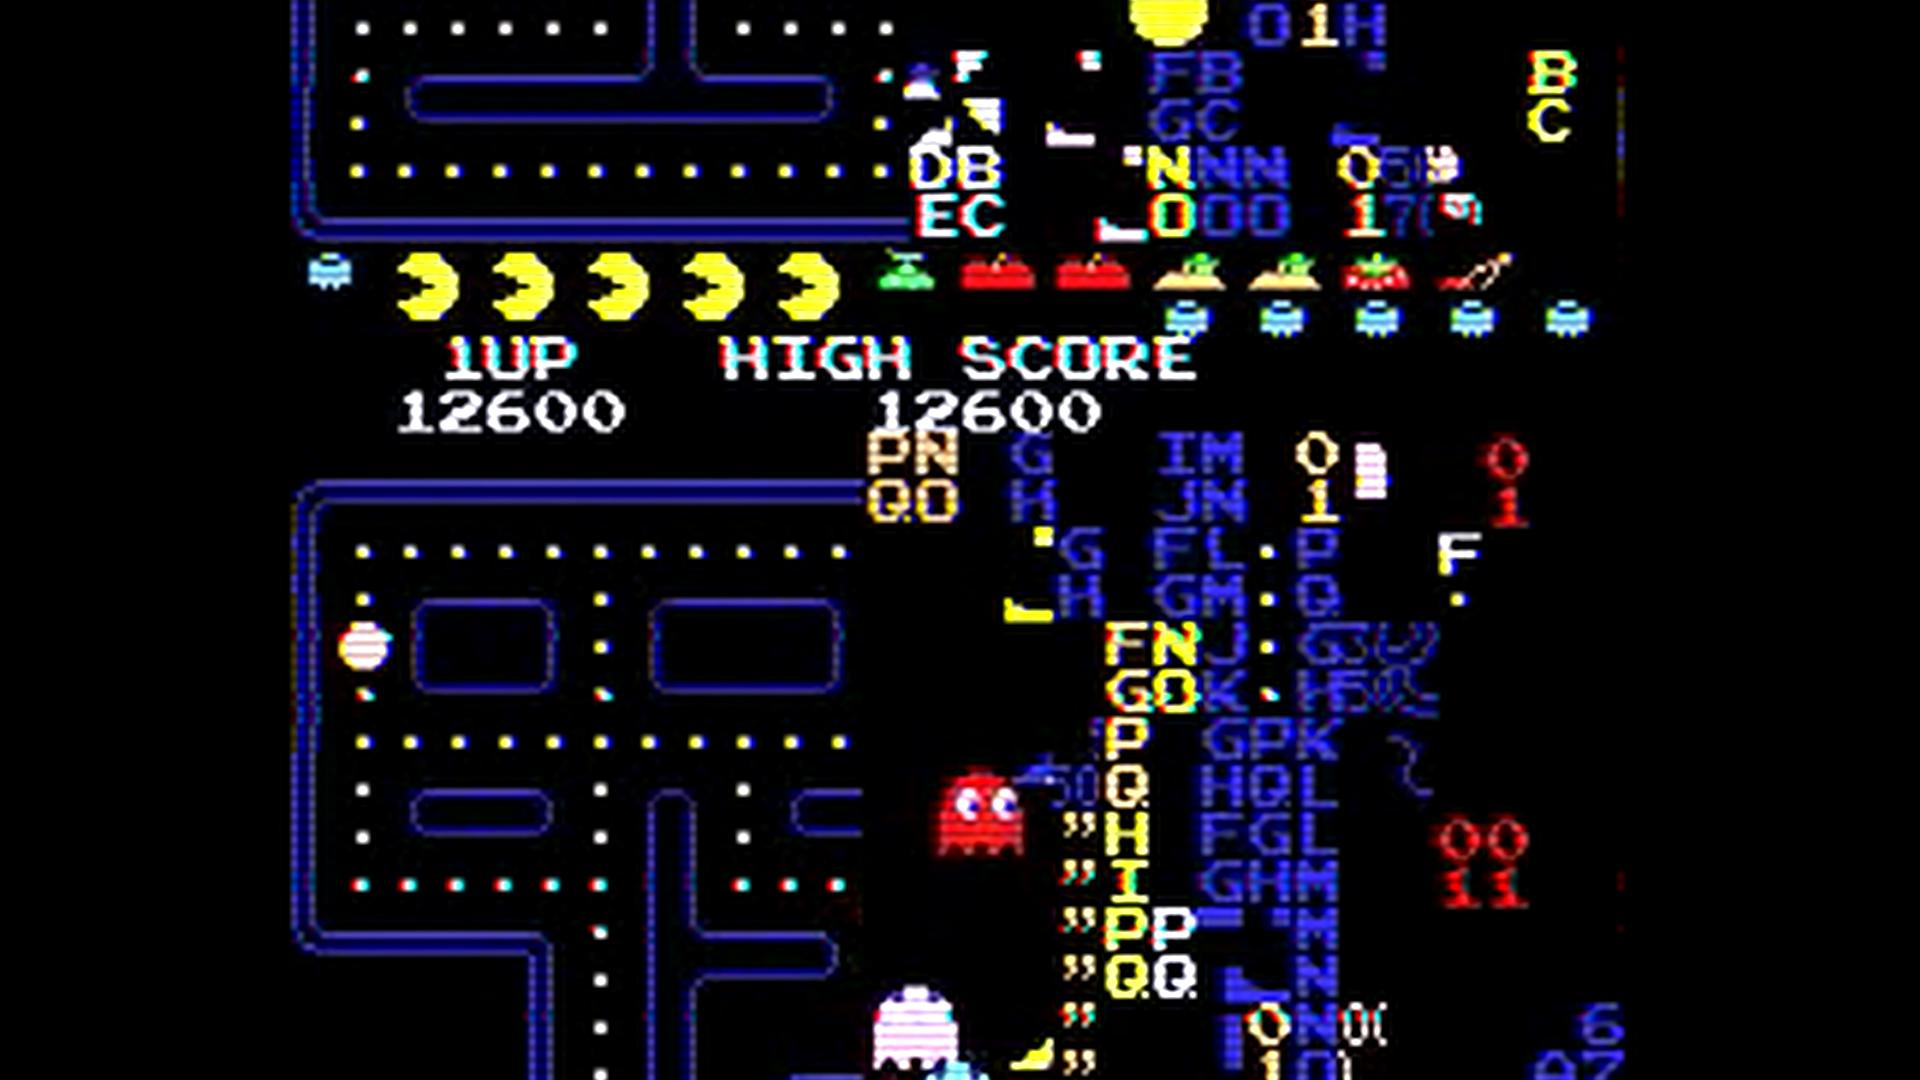 There's a new game coming out based on an insane glitch in the original Pac-Man